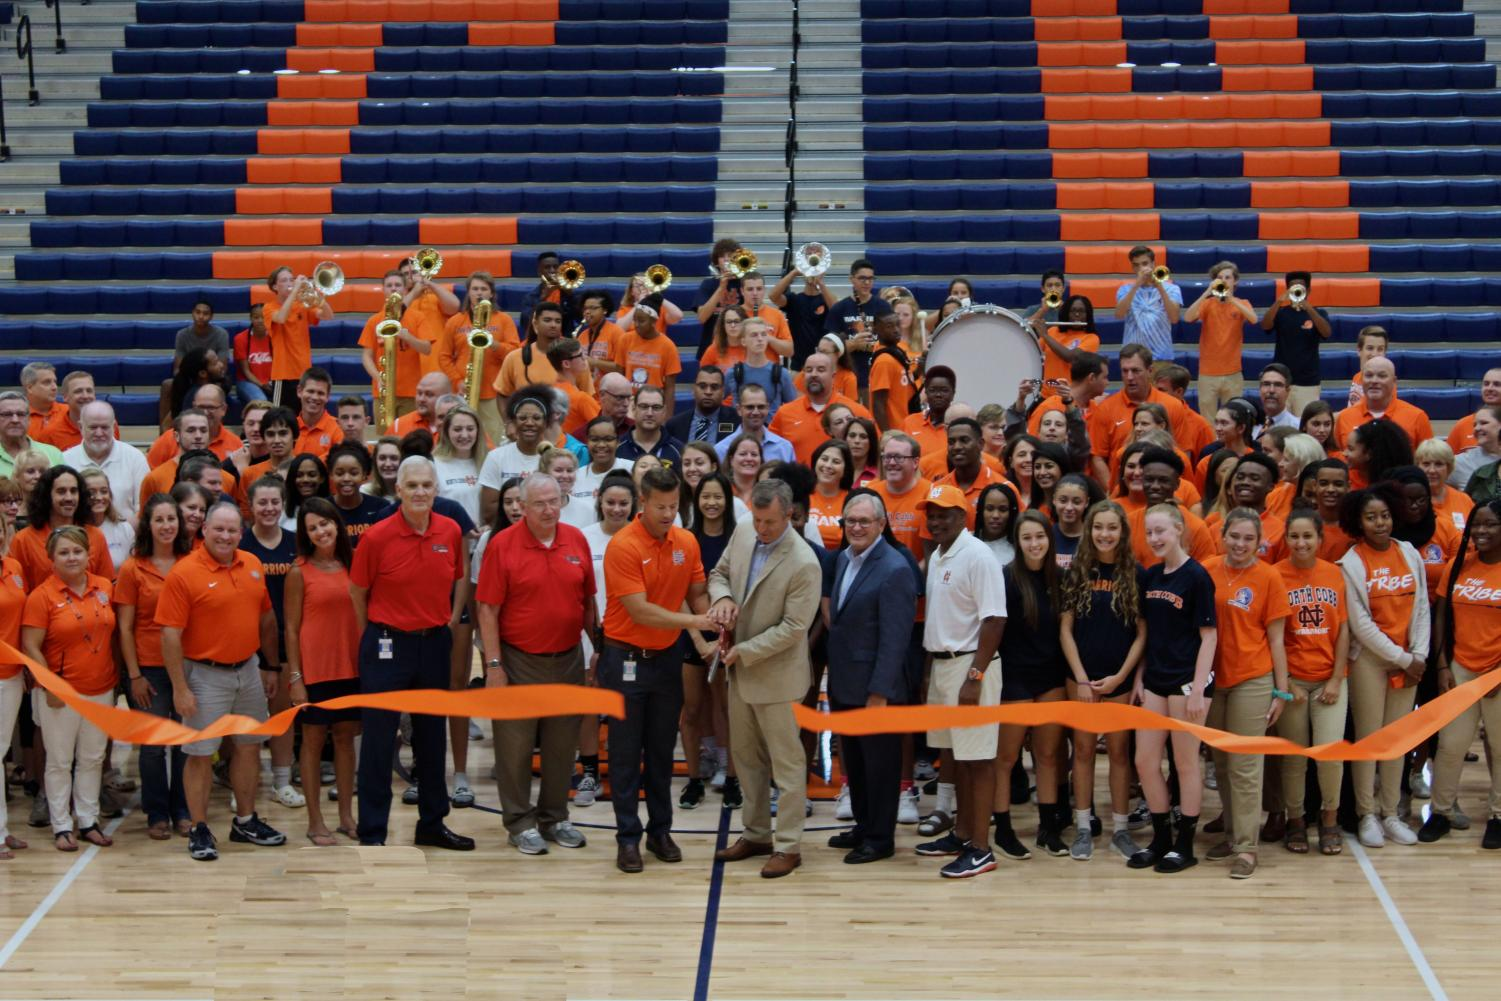 Principal Matthew Moody and Assistant Principal and Athletic Director Matthew Williams celebrated the opening of the new Arena and Performing Arts Center with the historic ribbon cutting ceremony on Tuesday, July 31. The administrative staff, faculty, and student body thanked the EverGreen construction team and the community leaders by providing refreshments and cake after the ceremony.